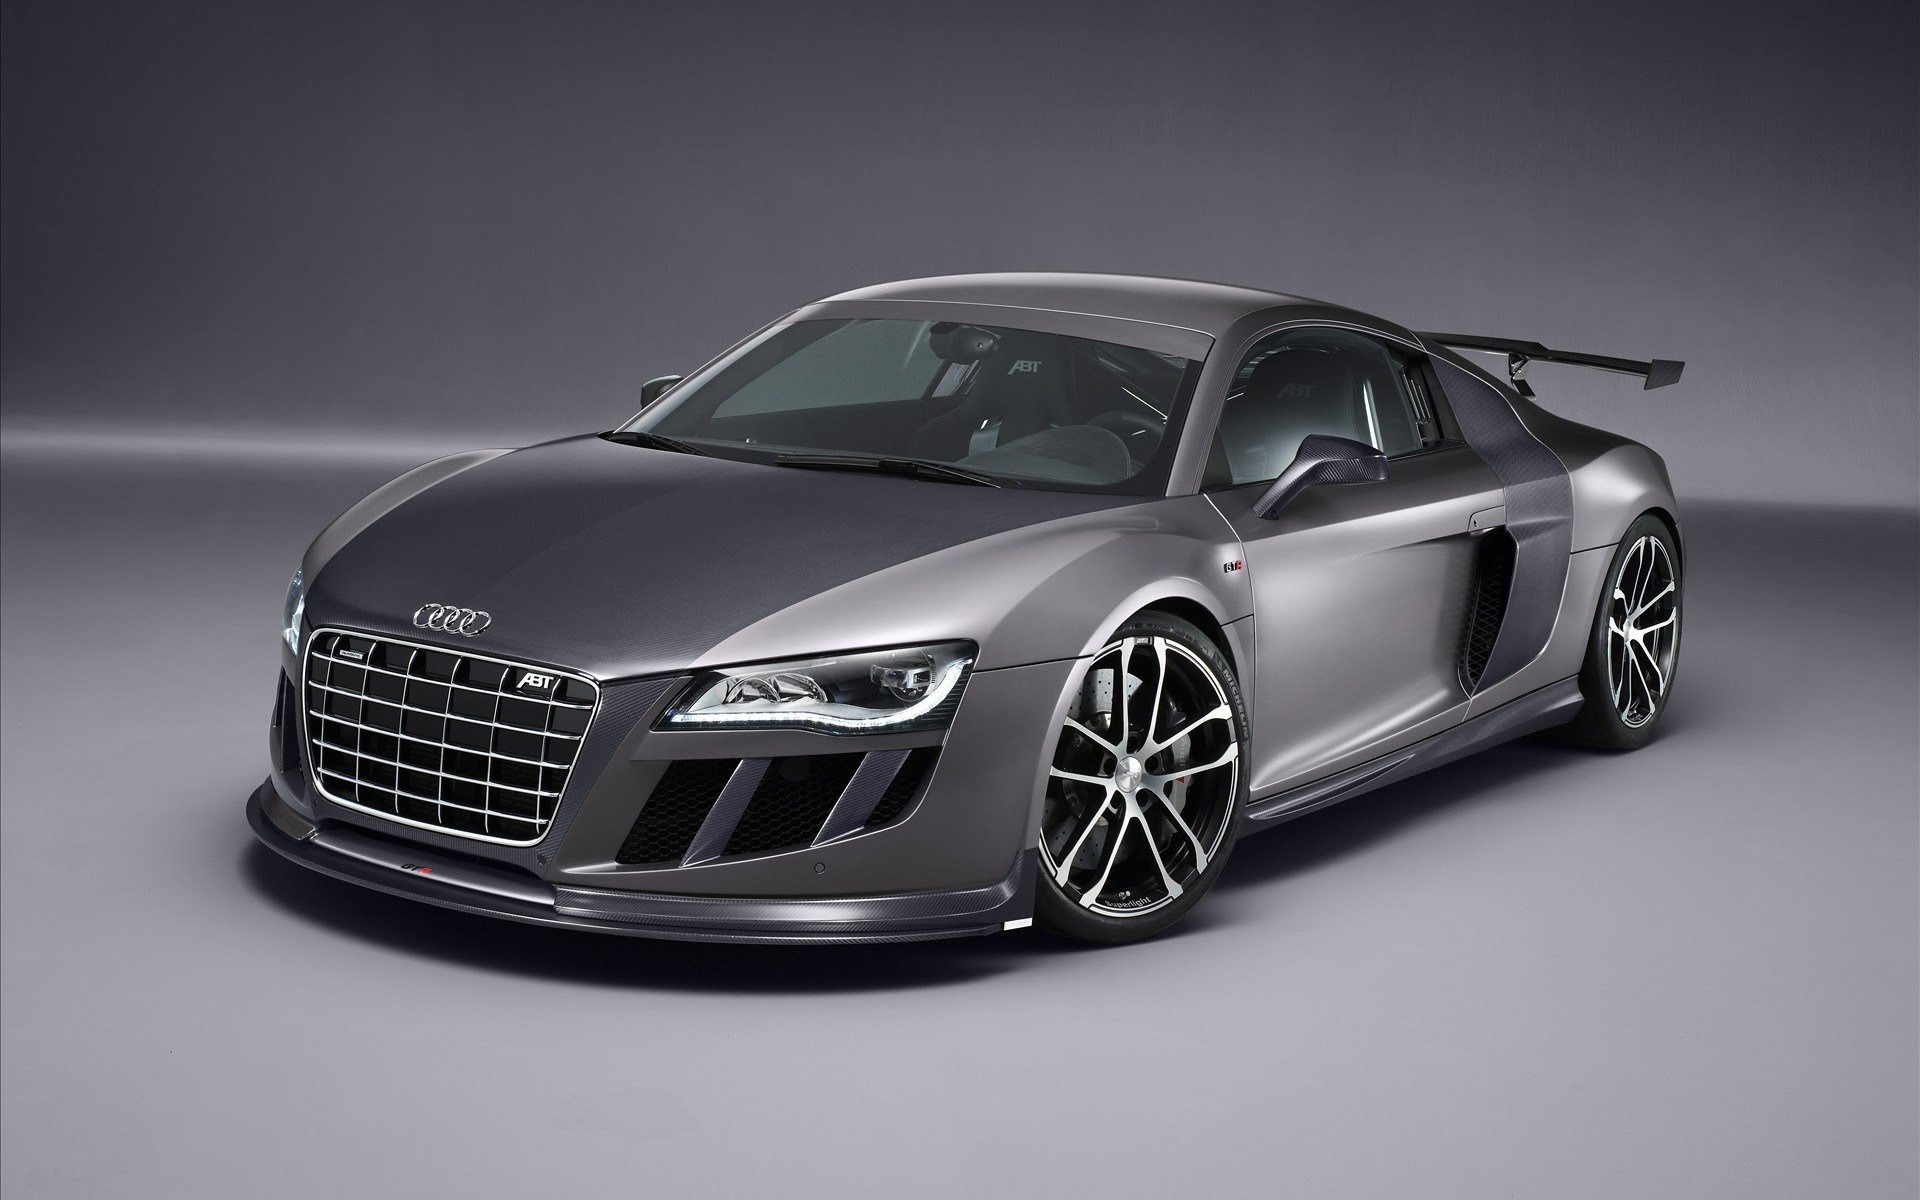 Latest 2010 Abt Audi R8 Gtr Wallpapers Hd Wallpapers Id 8529 Free Download